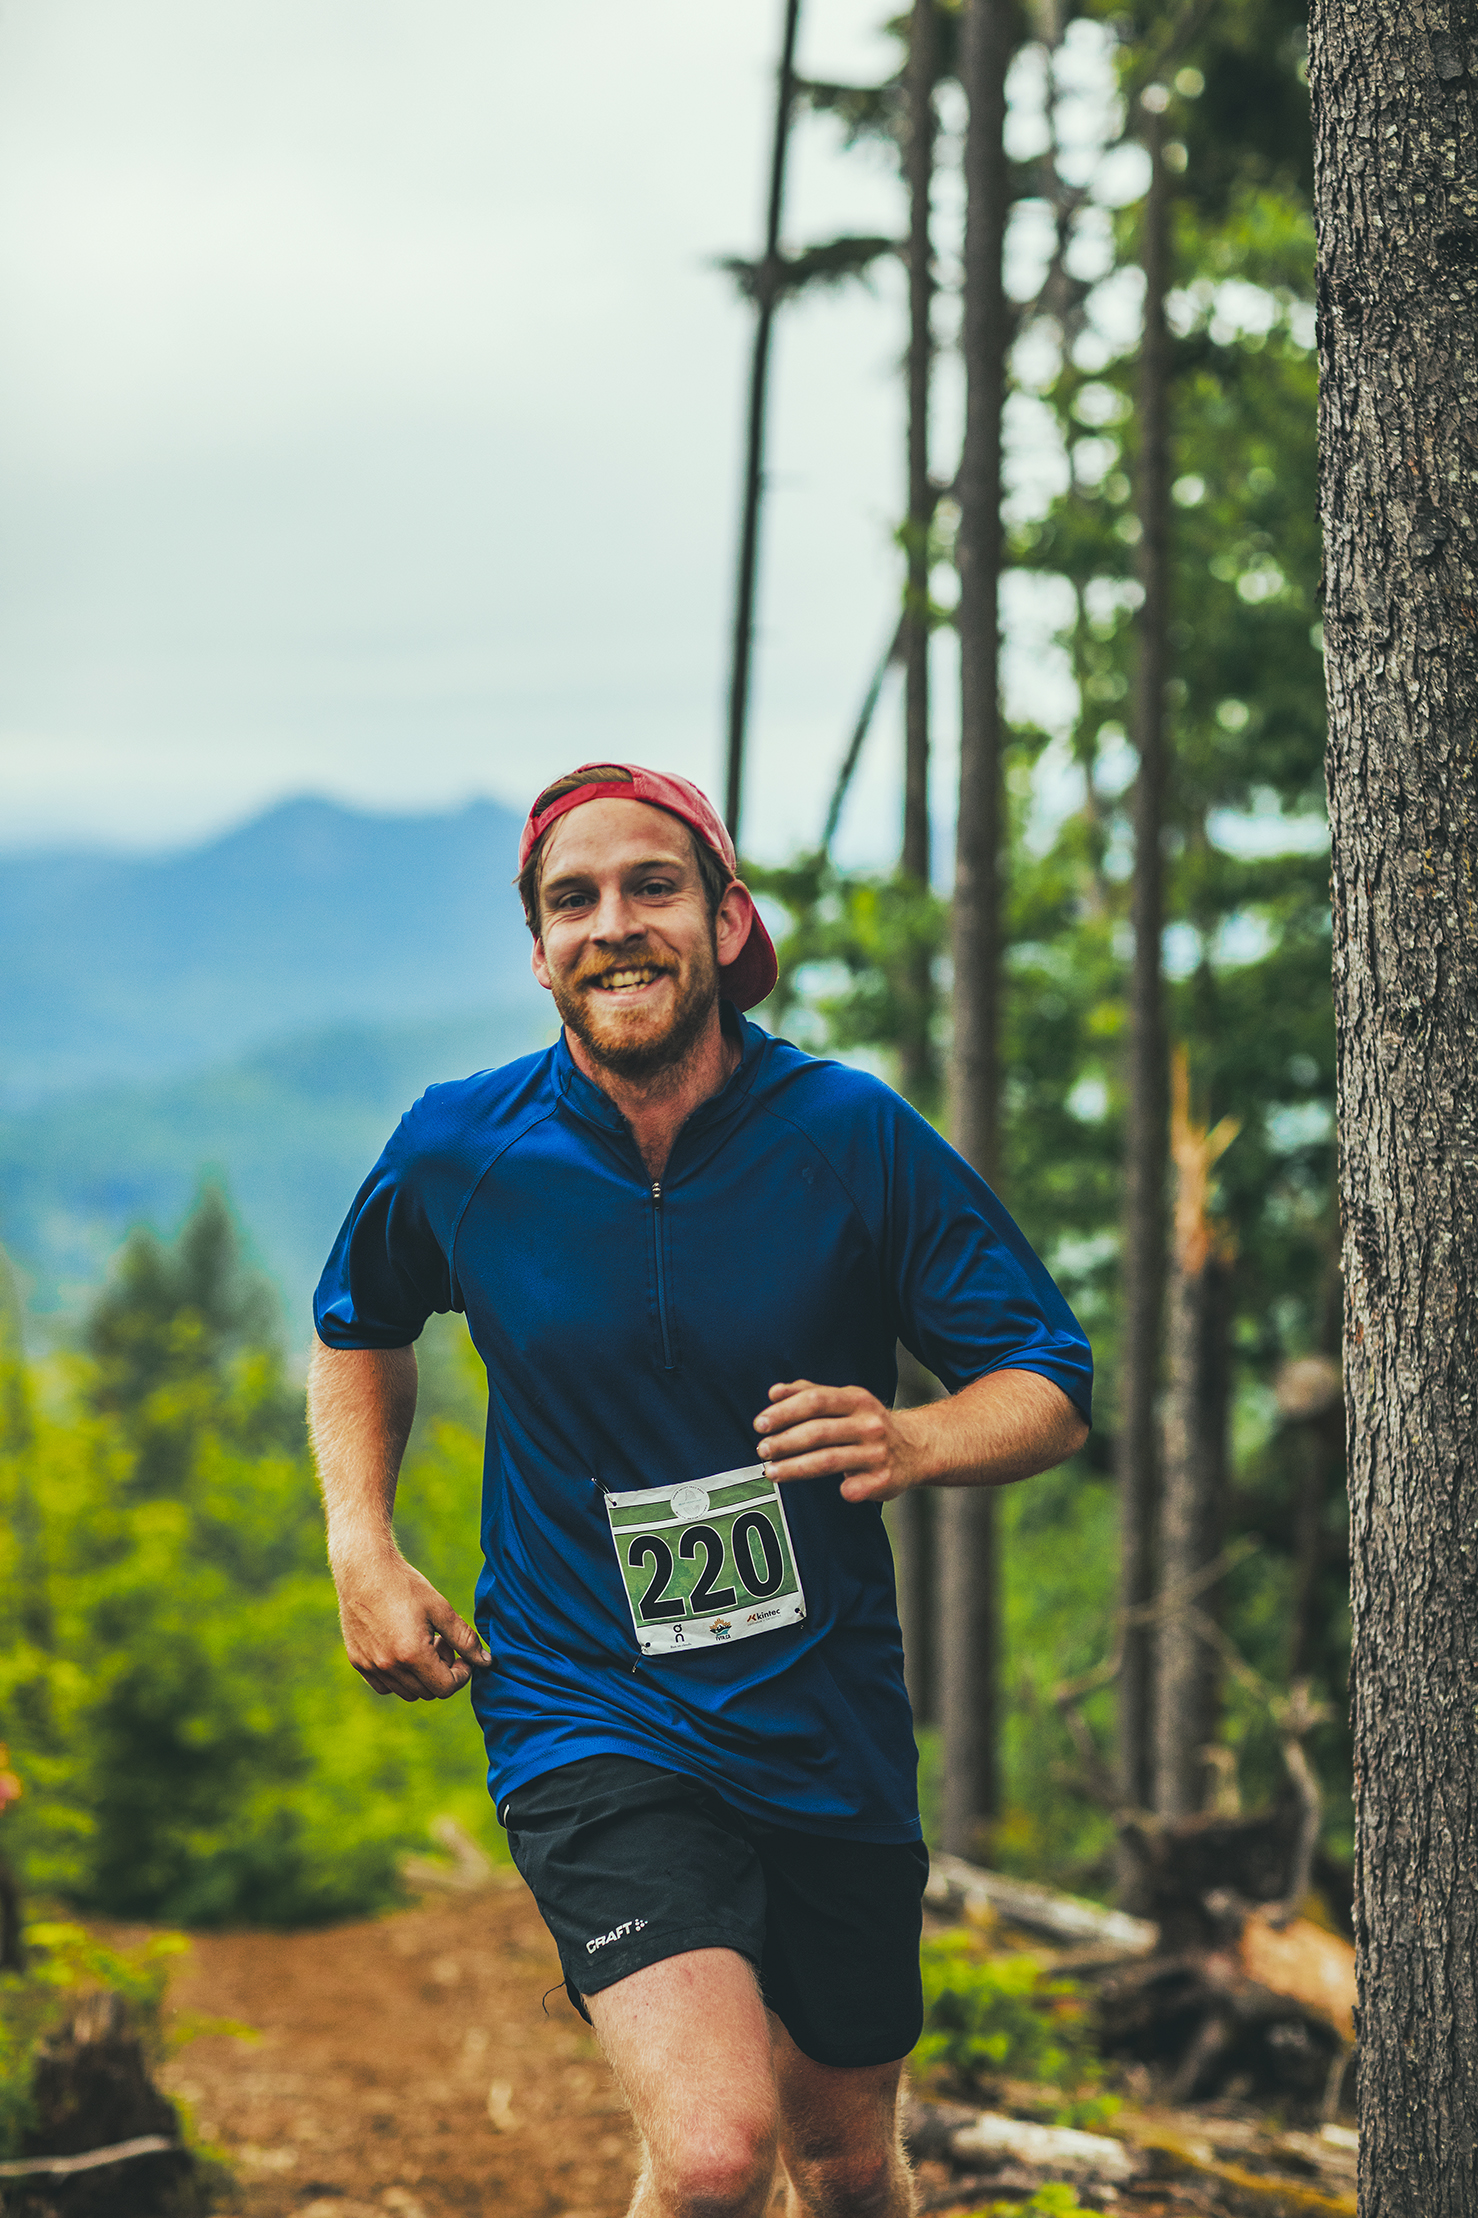 Fraser Valley Trail Races - Bear Mountain - IMG_1644 by Brice Ferre Studio - Vancouver Portrait Adventure and Athlete Photographer.jpg